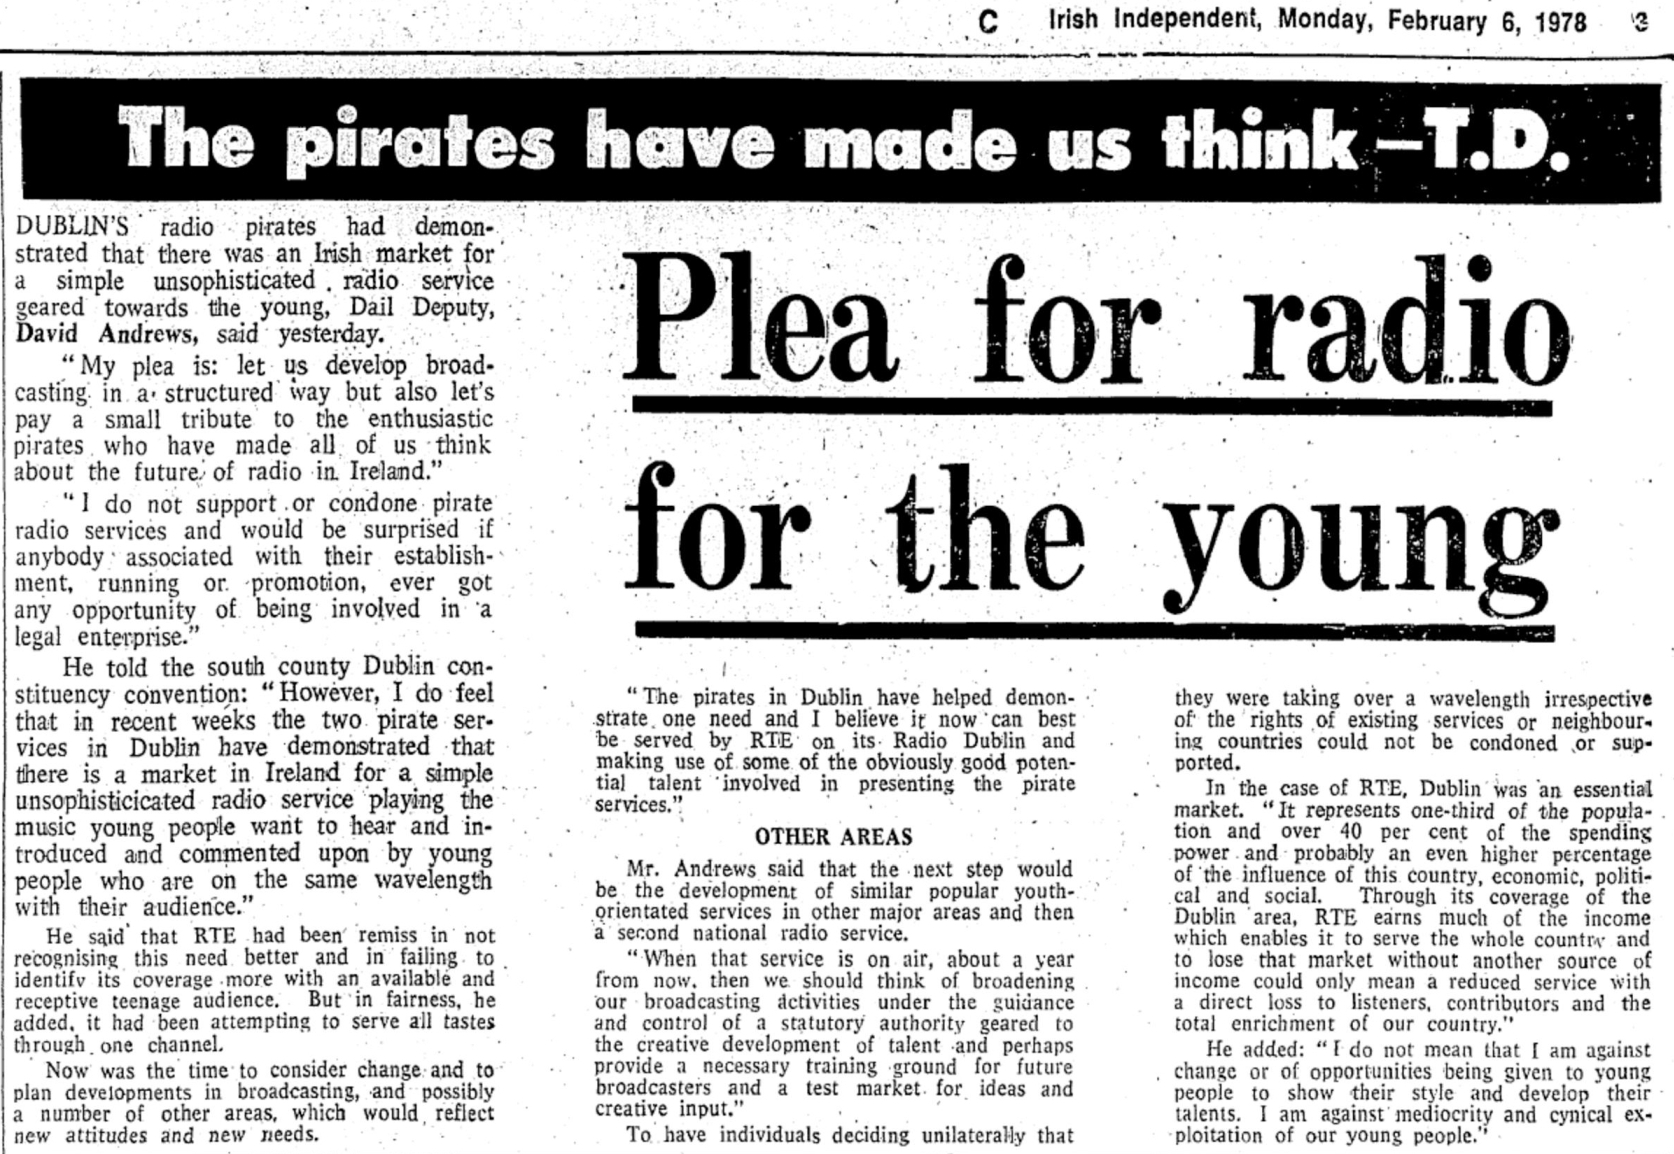 Plea for radio for the young was a newspaper headline from The Irish Independent dated February 6th 1978